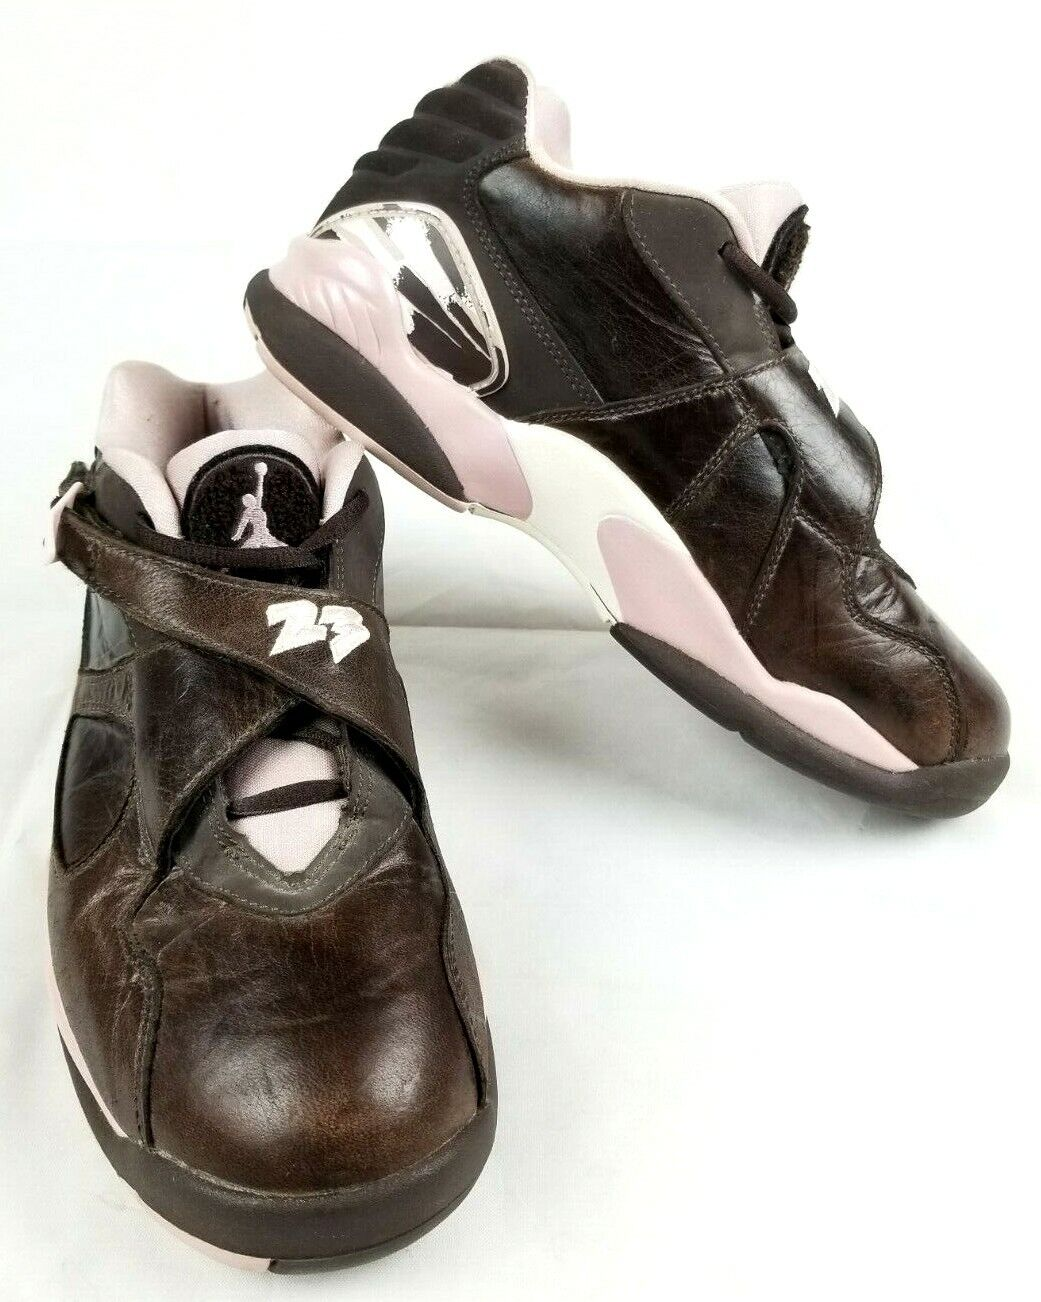 WOMEN NIKE AIR JORDAN VIII 8.5 8.5 8.5 RETRO LOW CINDER BROWN CHAMPAGNE PINK 317251-261 e32d51